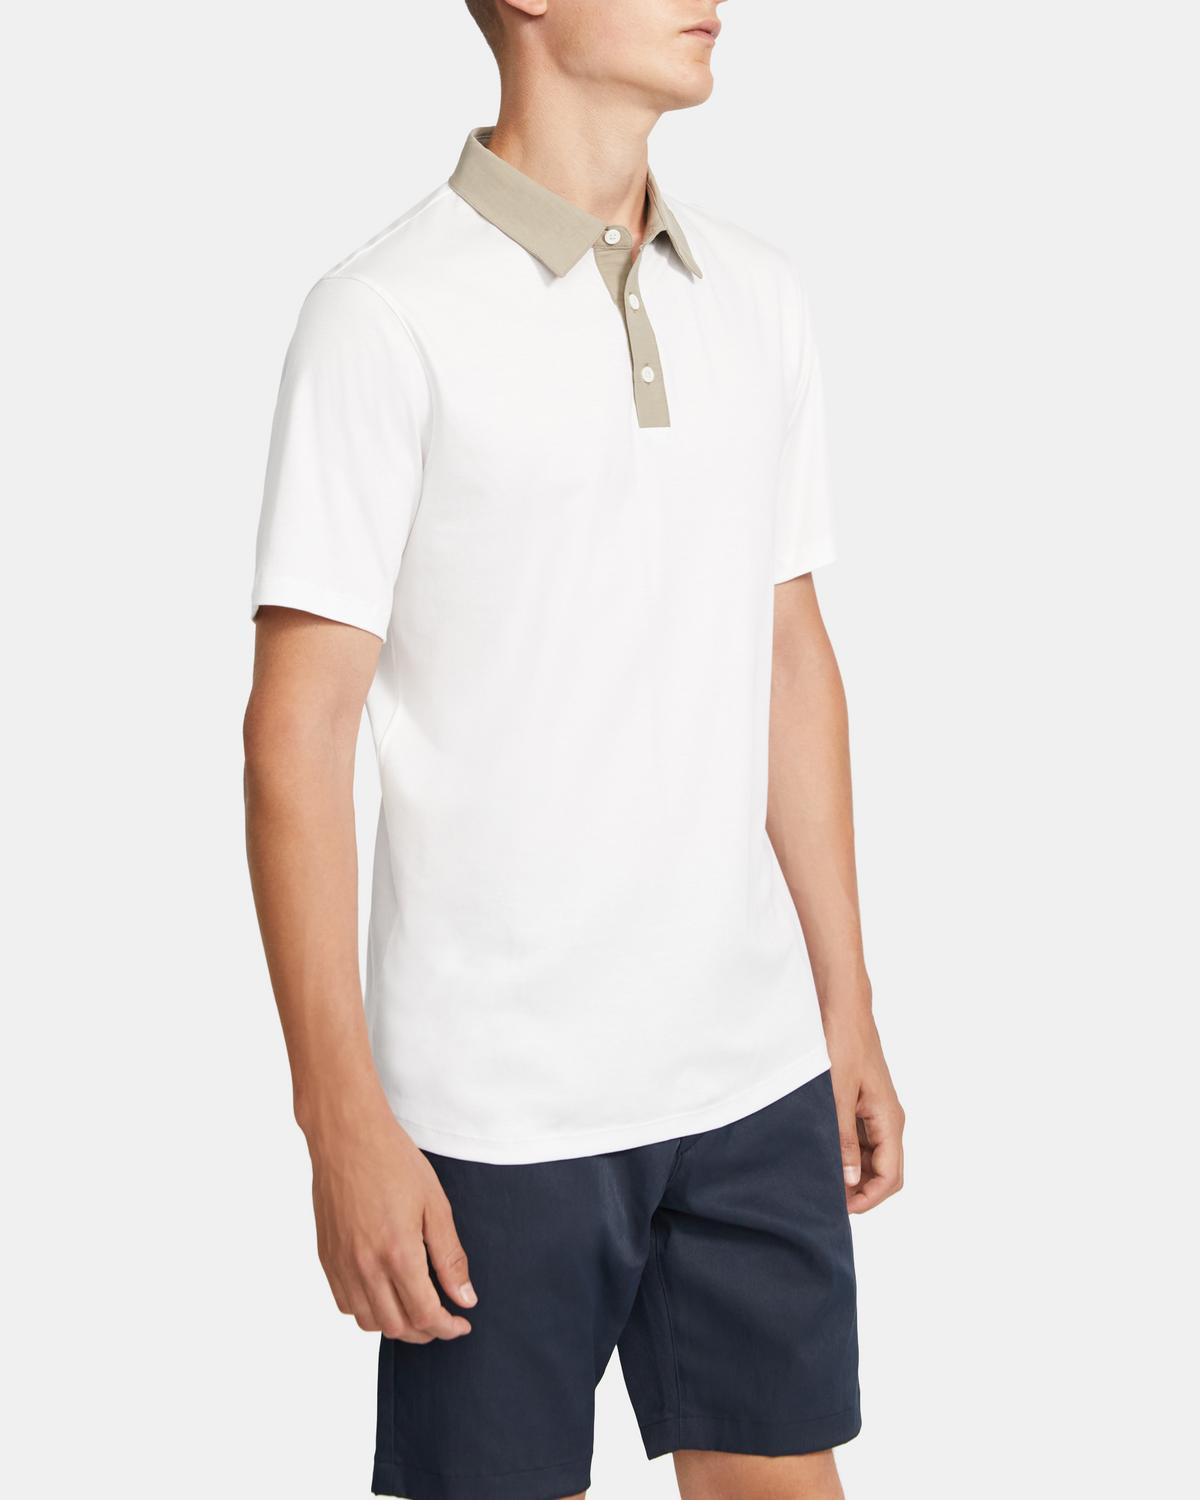 Combo Polo Shirt in Cotton